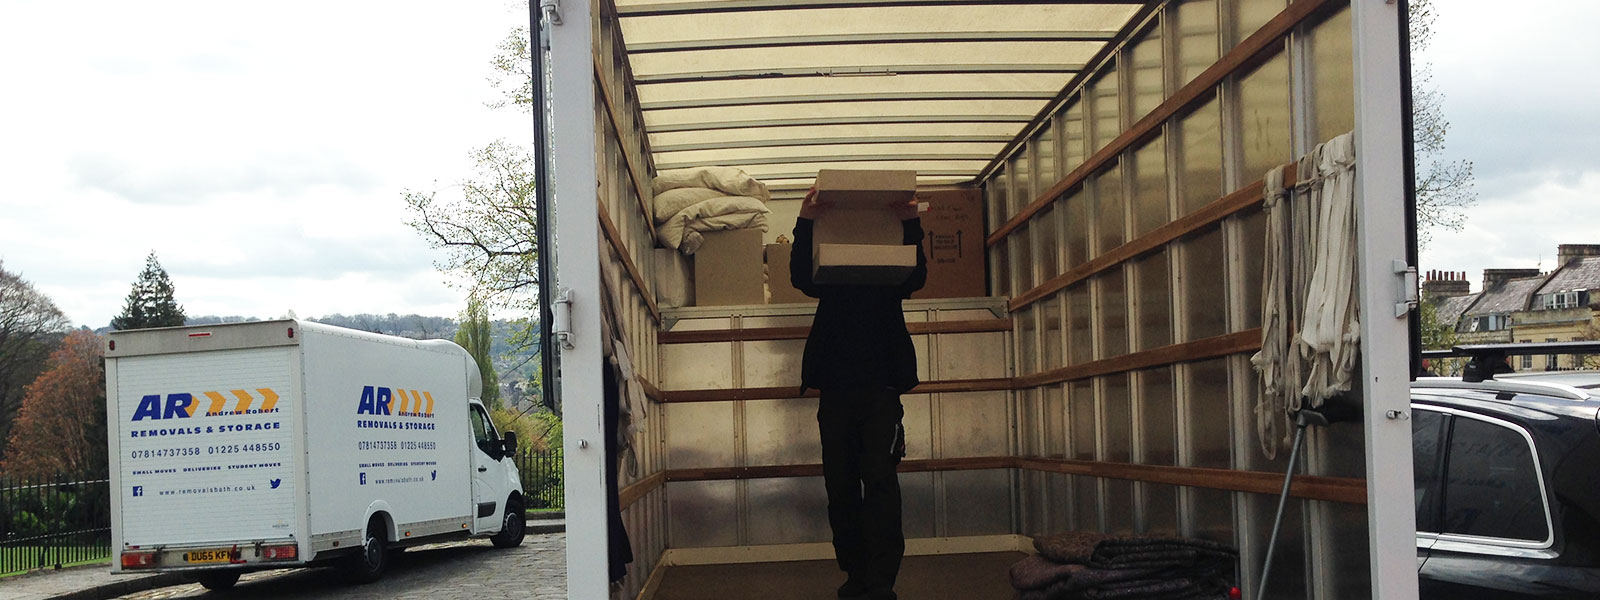 Bradford-on-Avon Removals